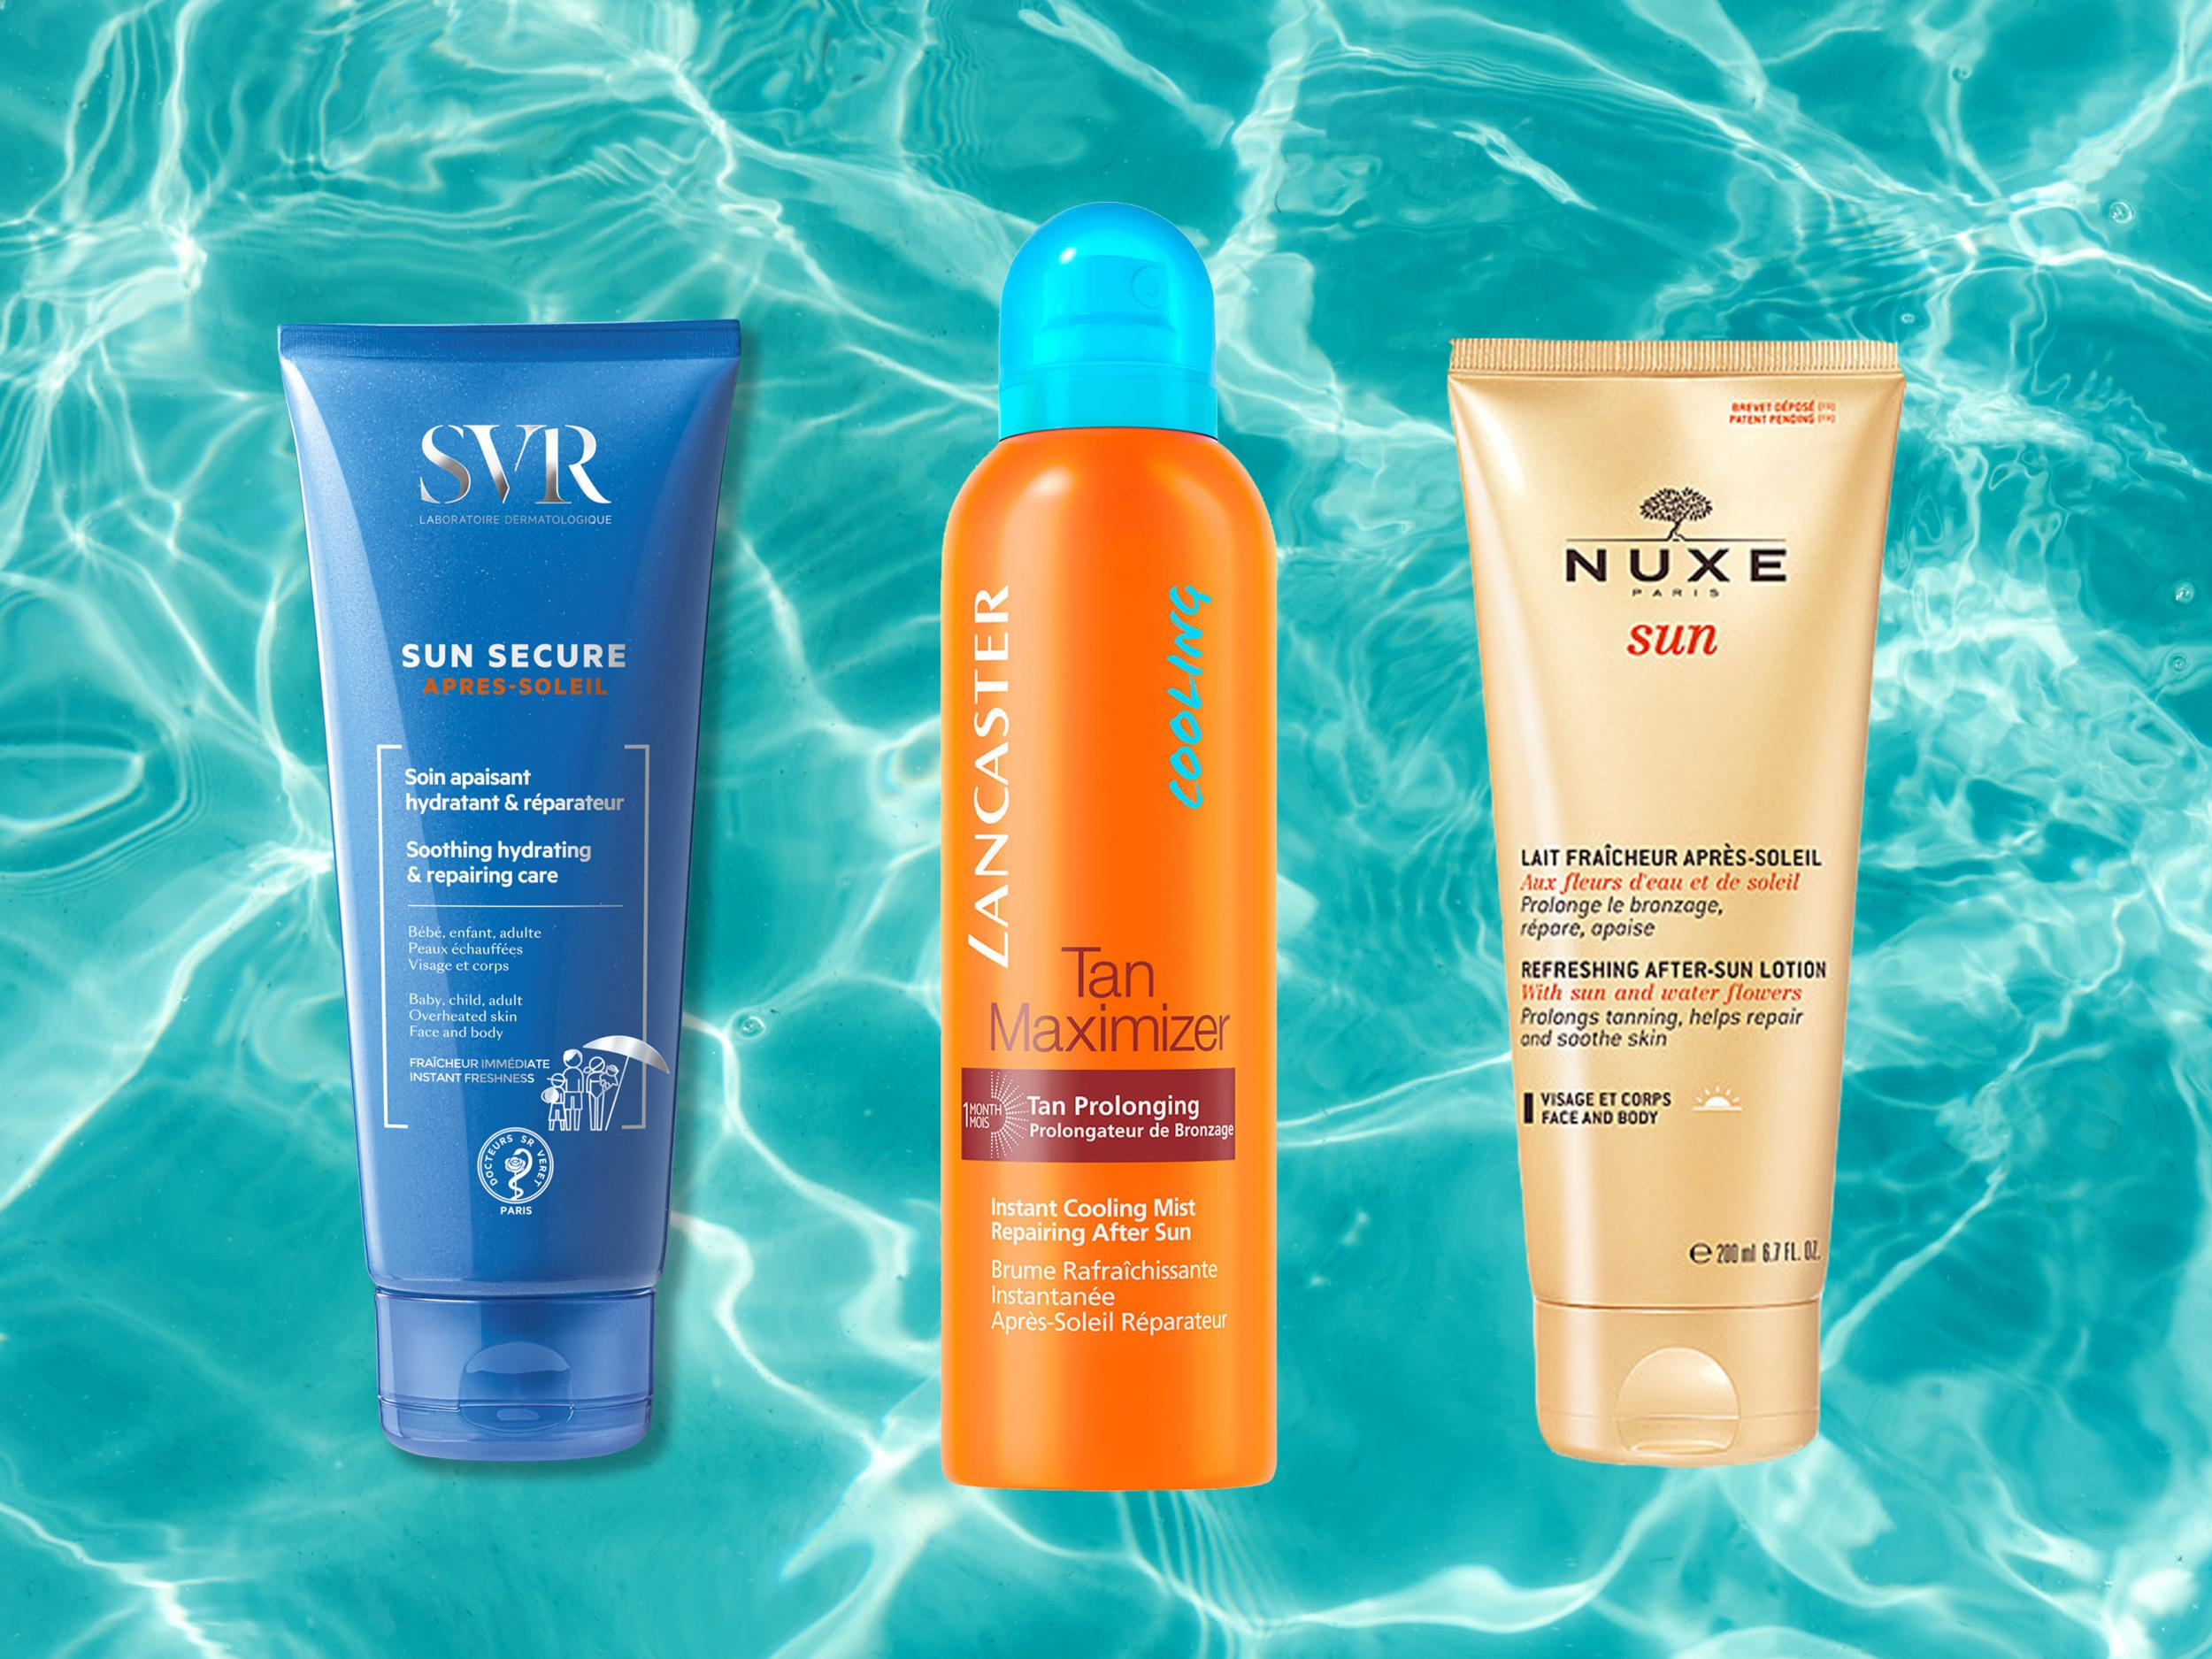 Best after-sun products to treat sunburn and keep skin hydrated and